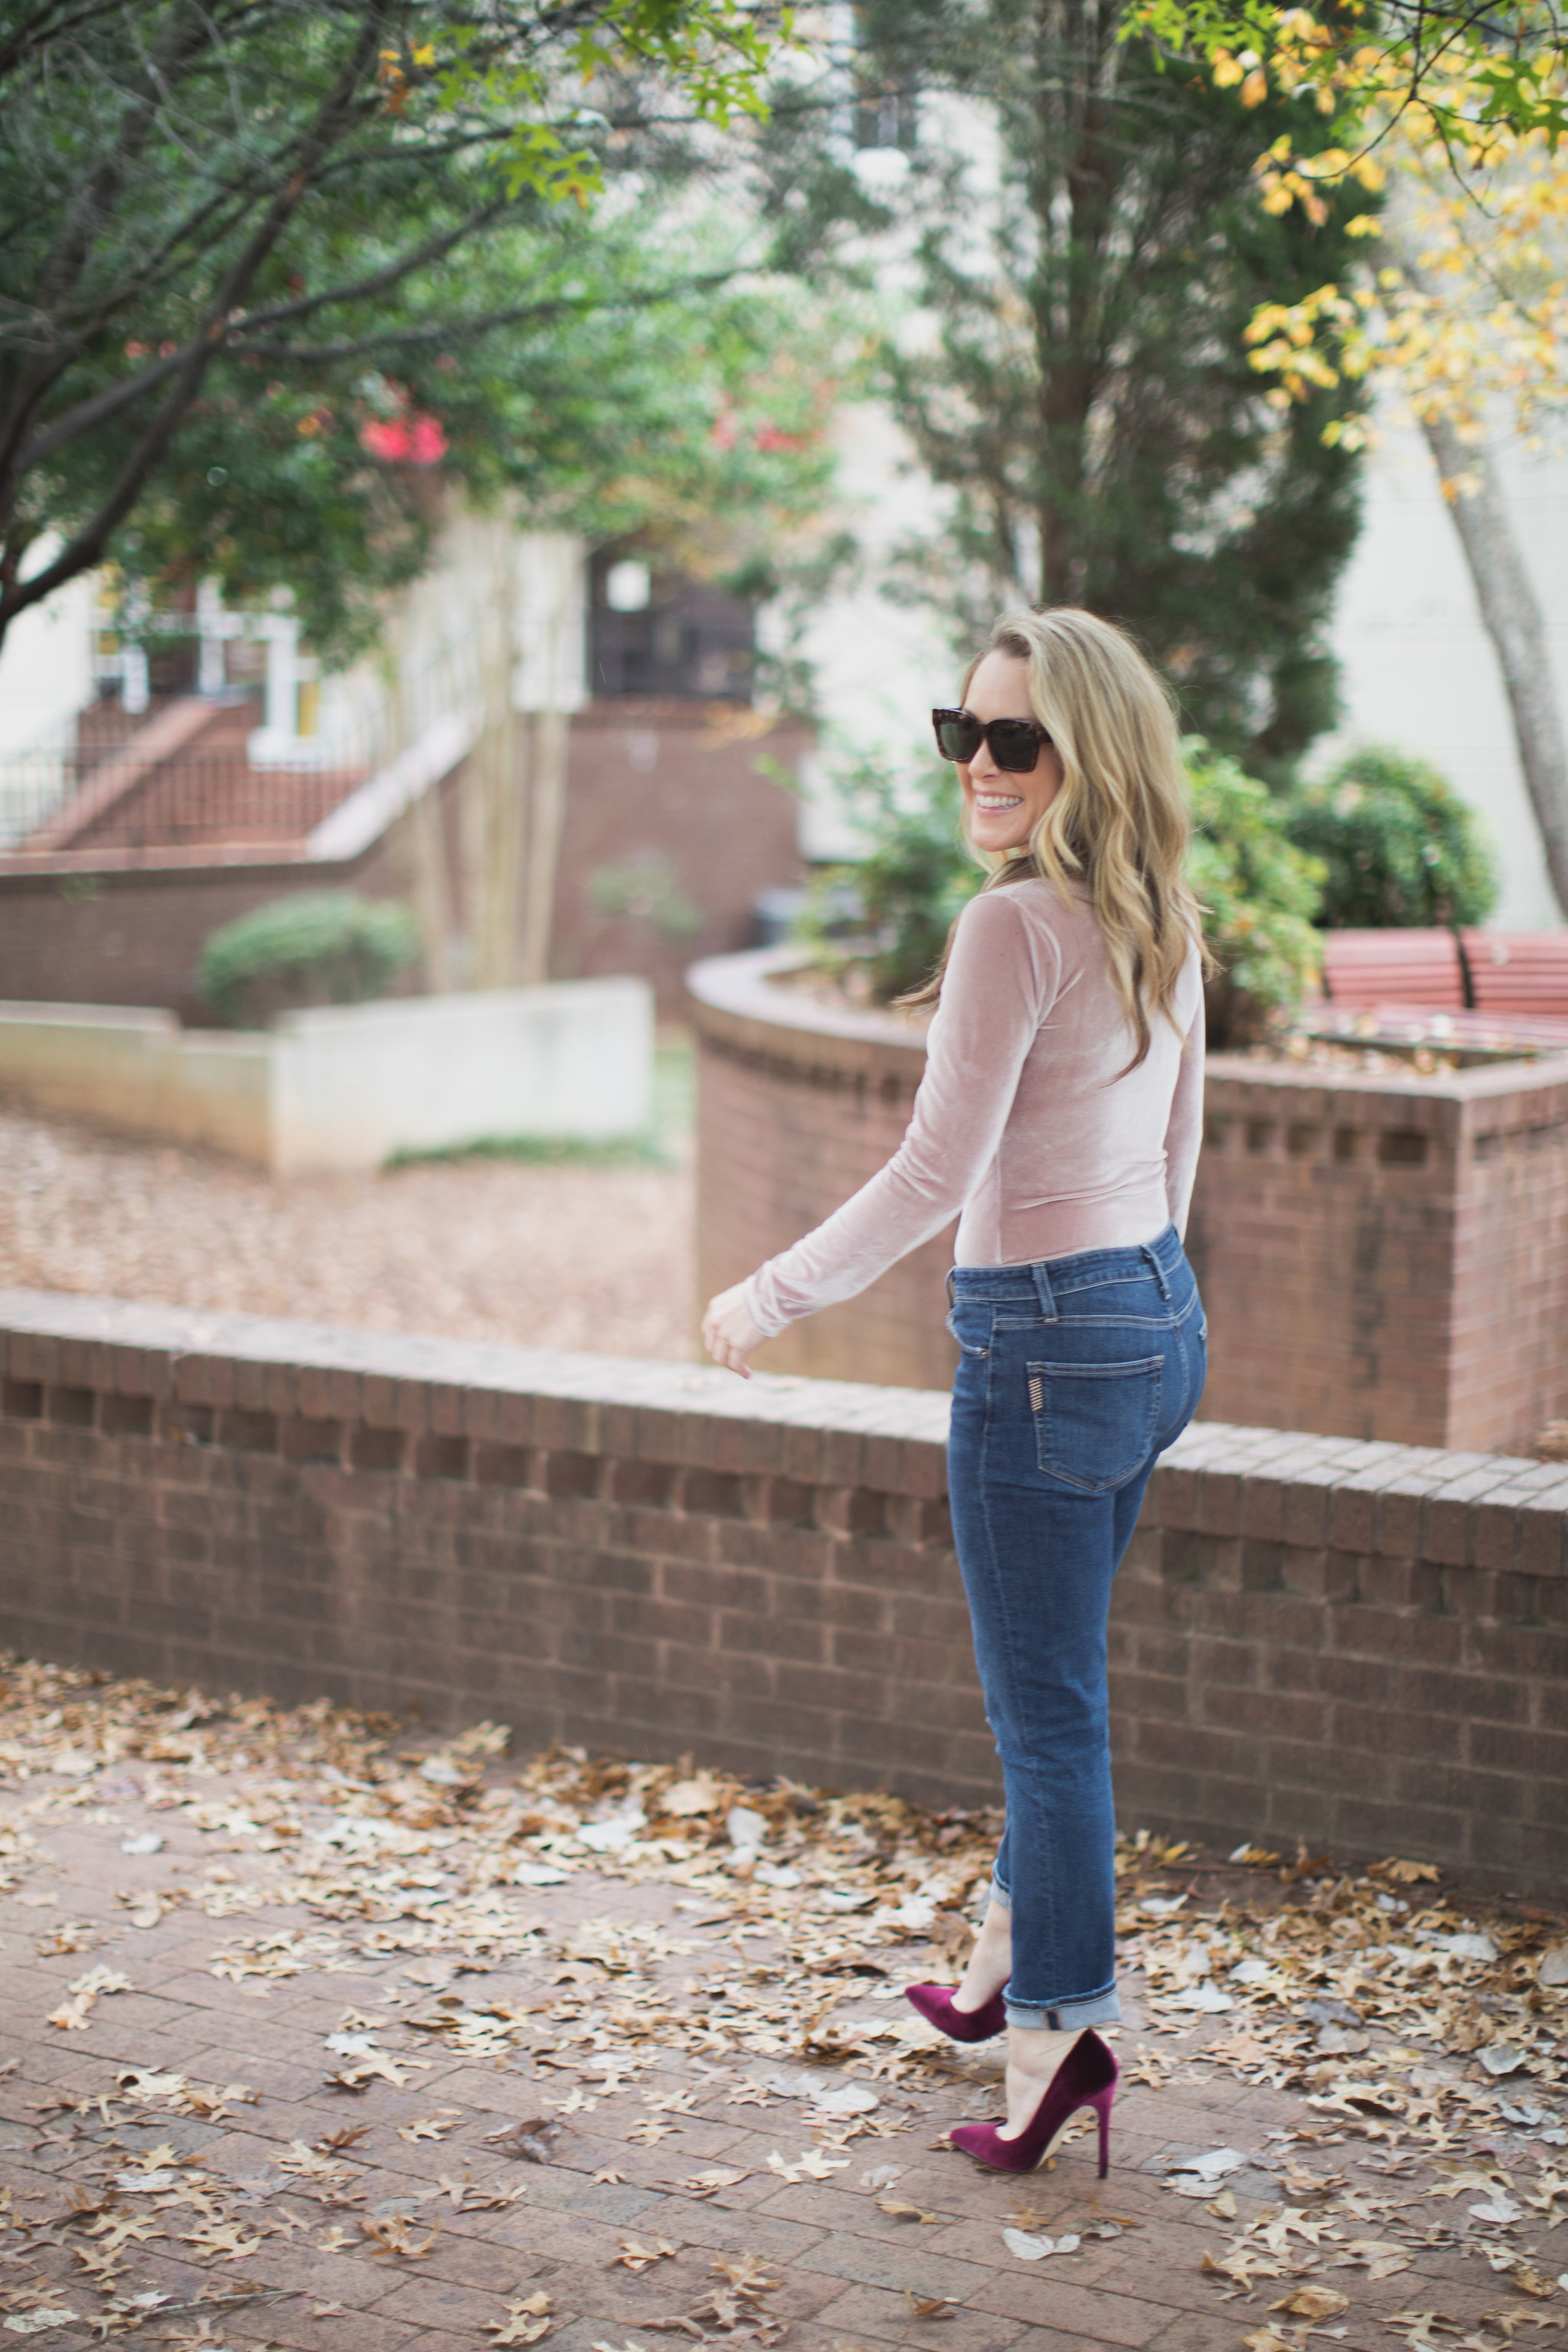 The perfect bodysuit for Fall! - Madewell Velvet Bodysuit by North Carolina style blogger Every Chic Way